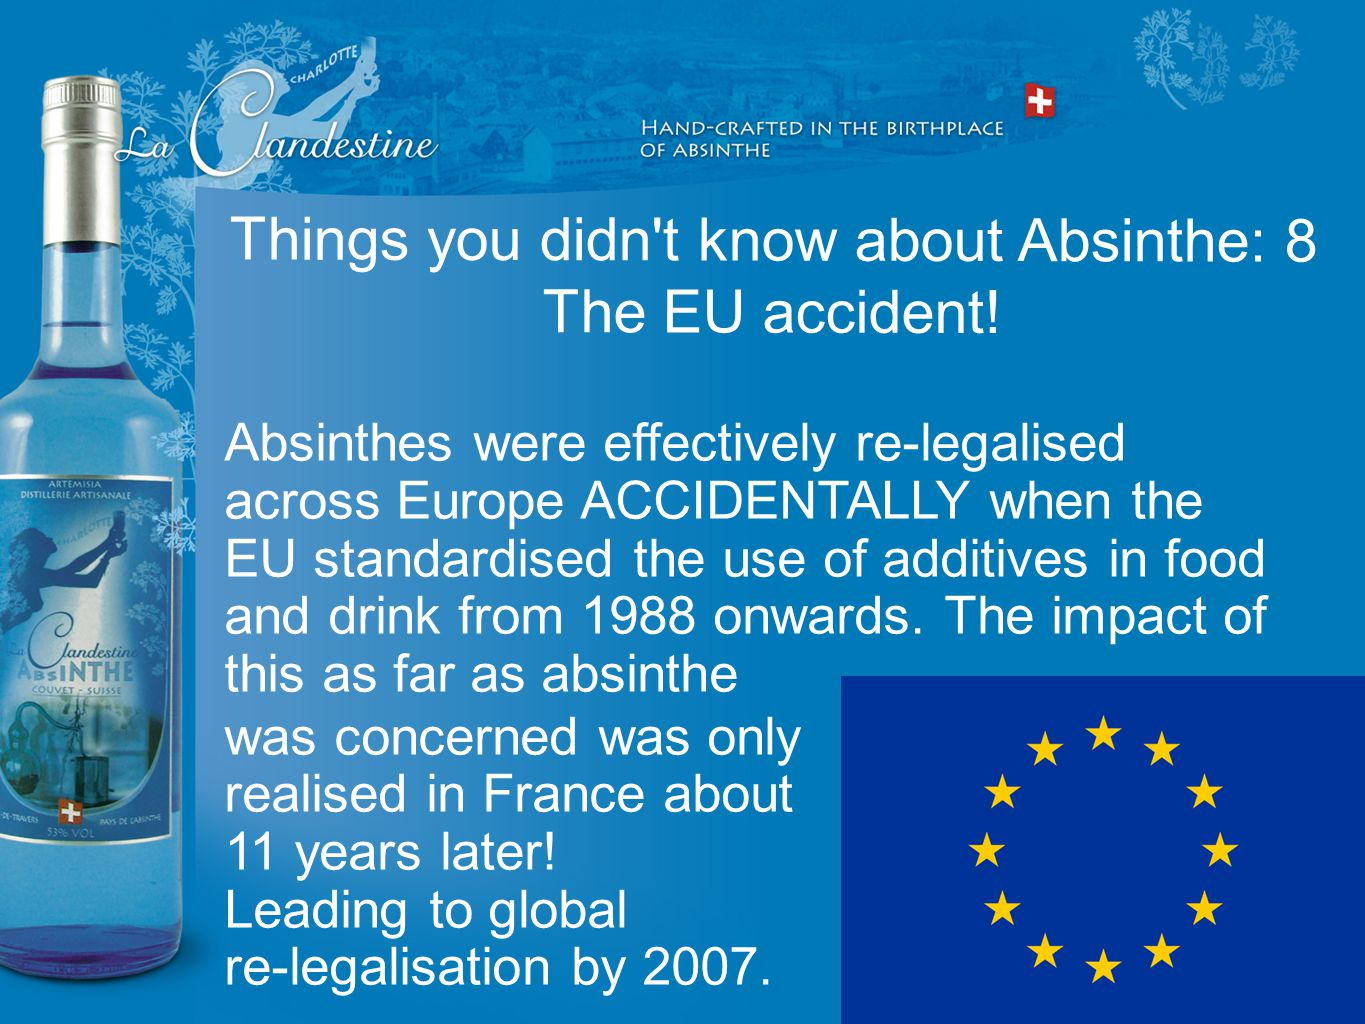 Absinthes were effectively re-legalised across Europe ACCIDENTALLY when the EU standardised the use of additives in food and drink from 1988 onwards.